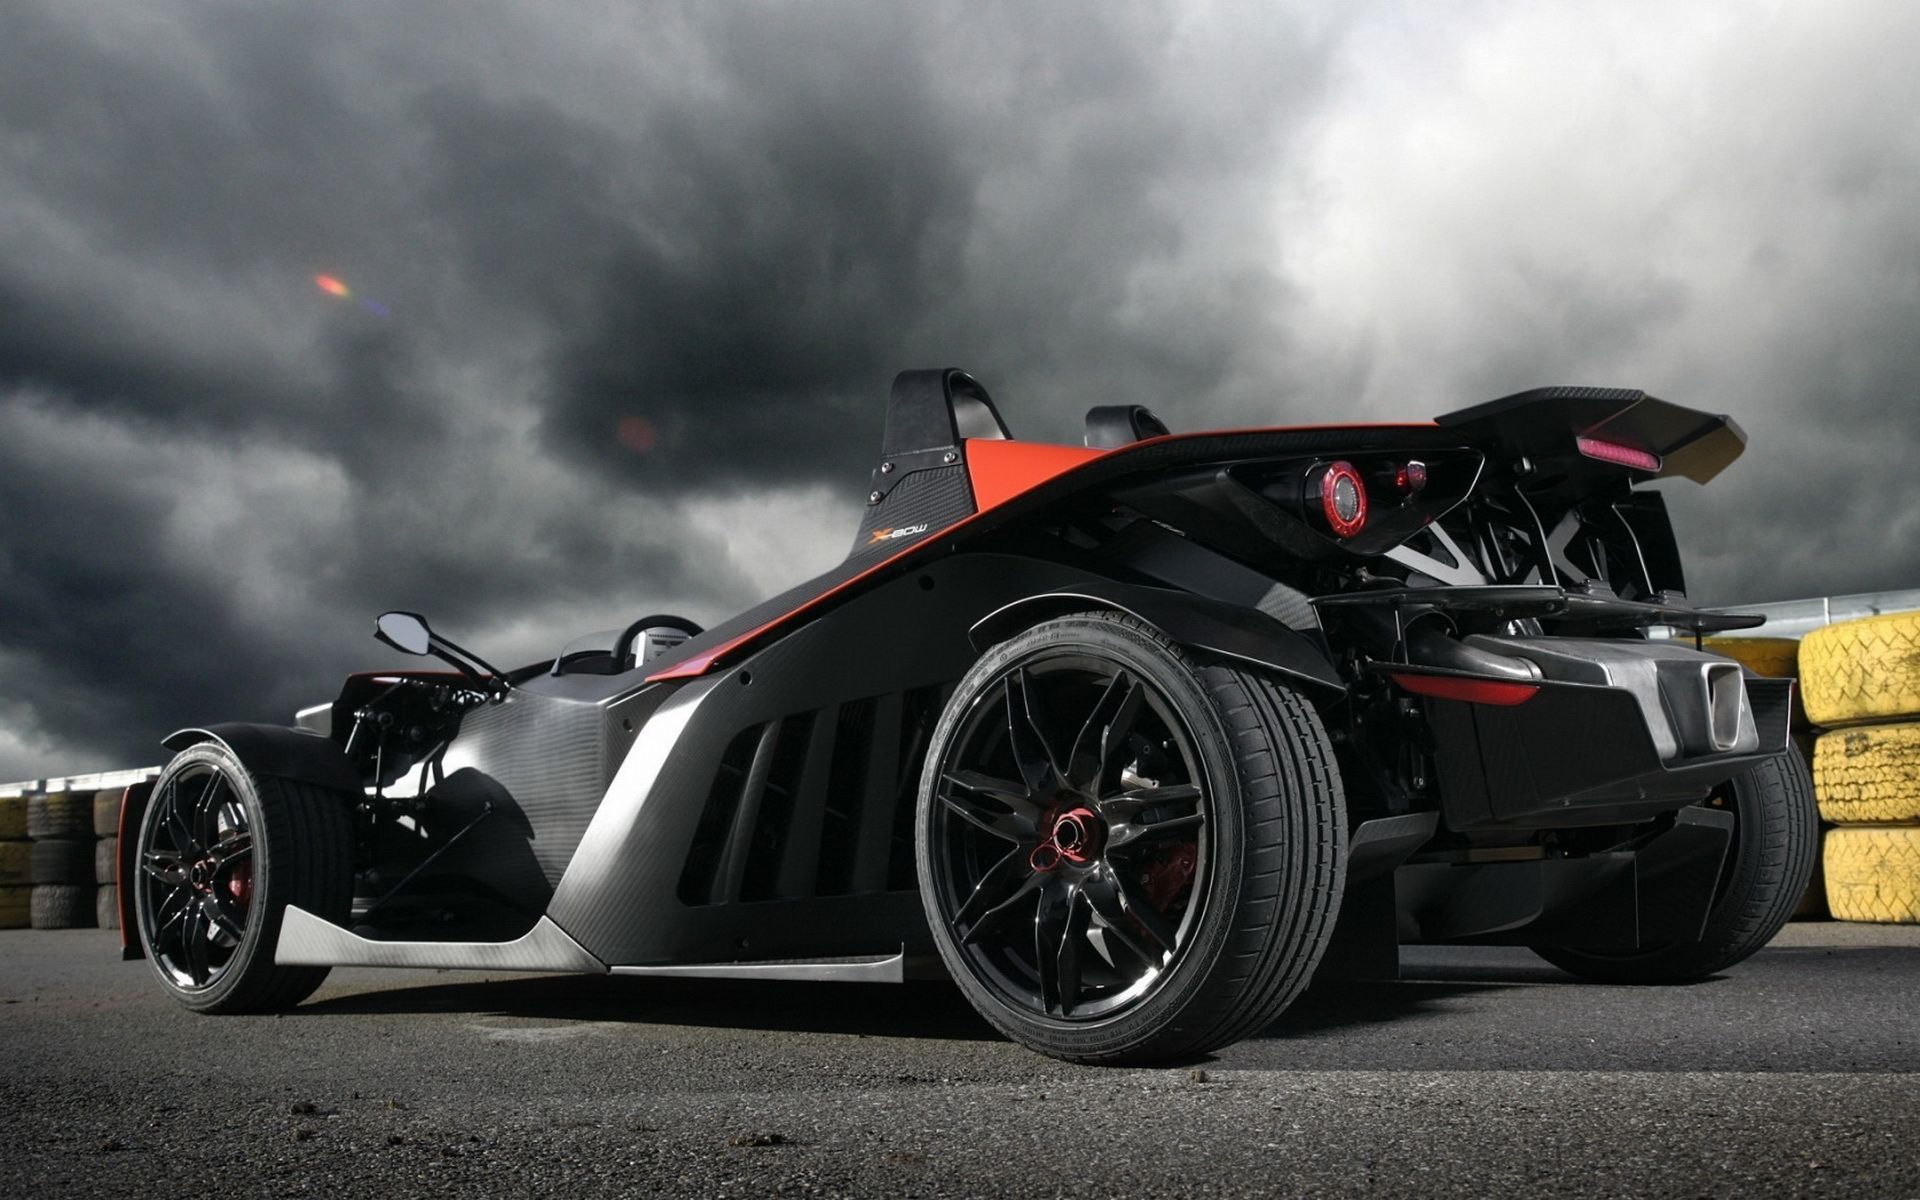 Innovative-Ktm-Car-with-PICT-of-KTM-XBOW-GT-Car-wallpaper-wpc5806352